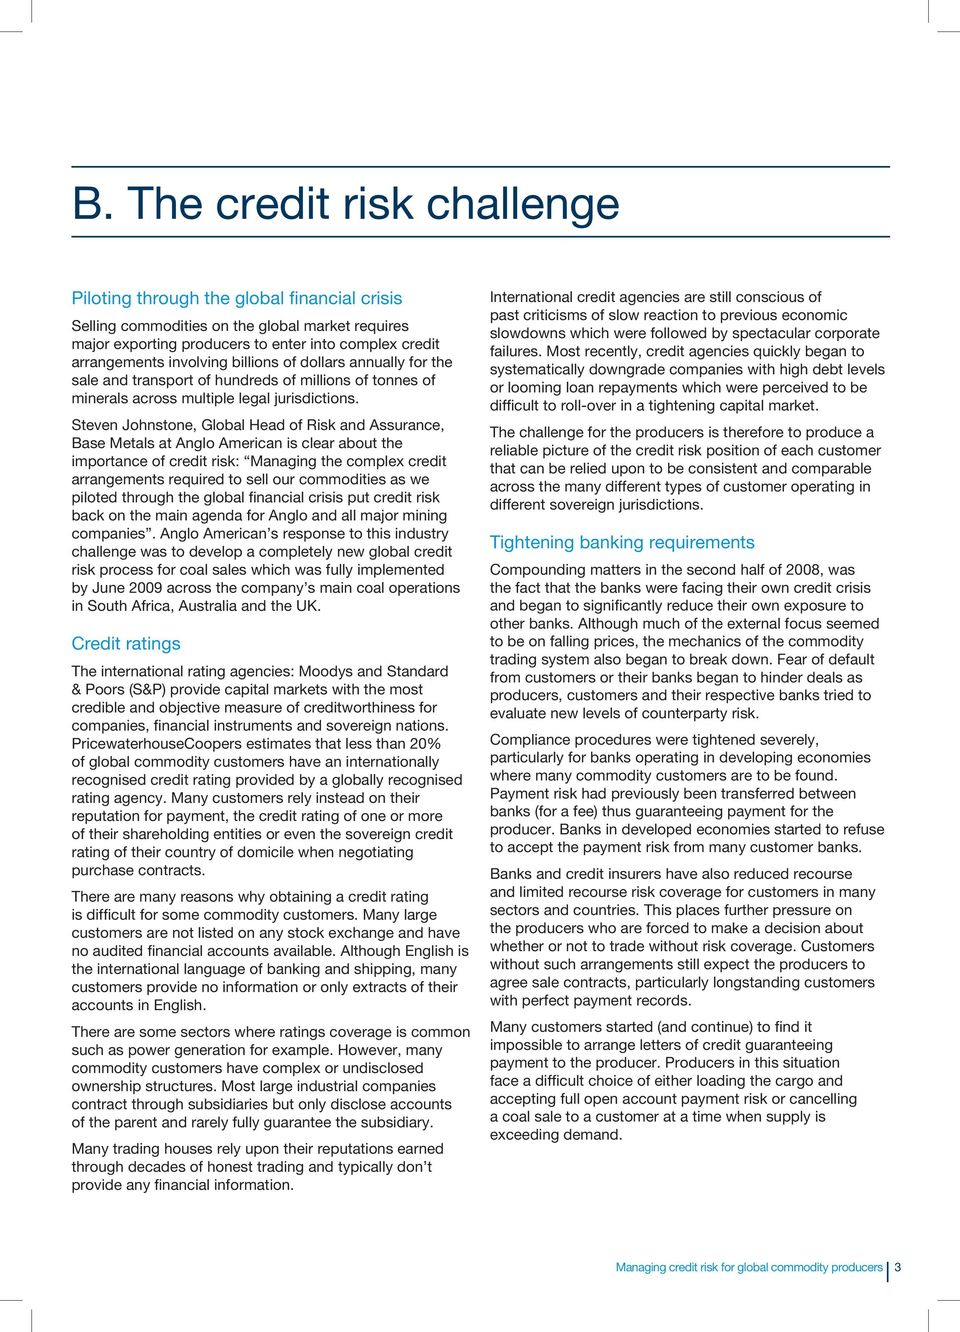 Steven Johnstone, Global Head of Risk and Assurance, Base Metals at Anglo American is clear about the importance of credit risk: Managing the complex credit arrangements required to sell our